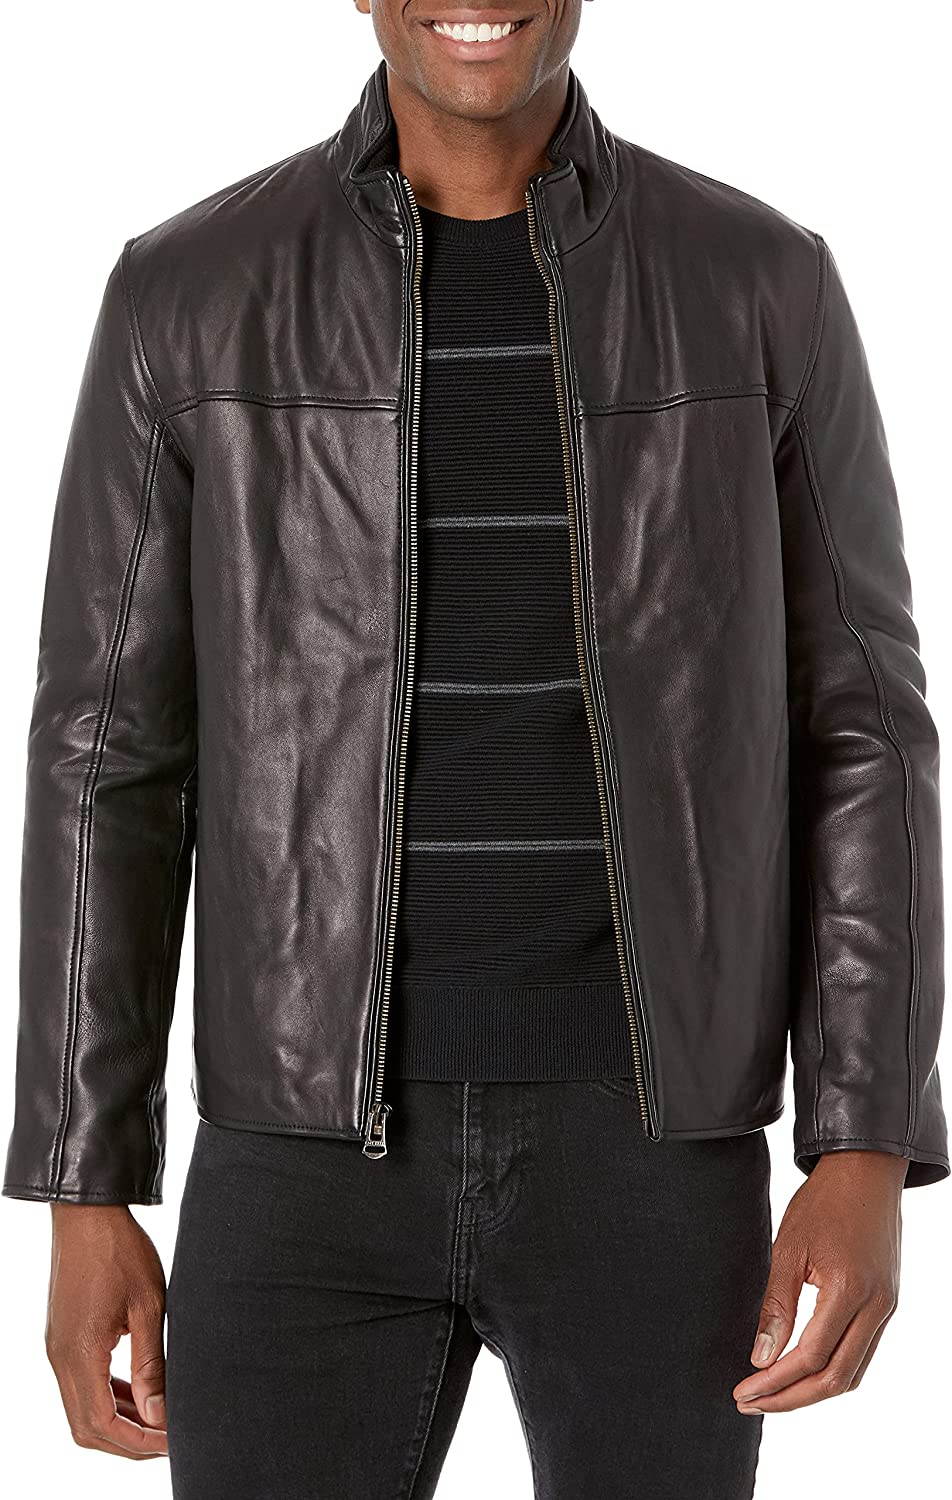 Cole Haan Men's Smooth Lamb Leather Jacket With Convertible Collar